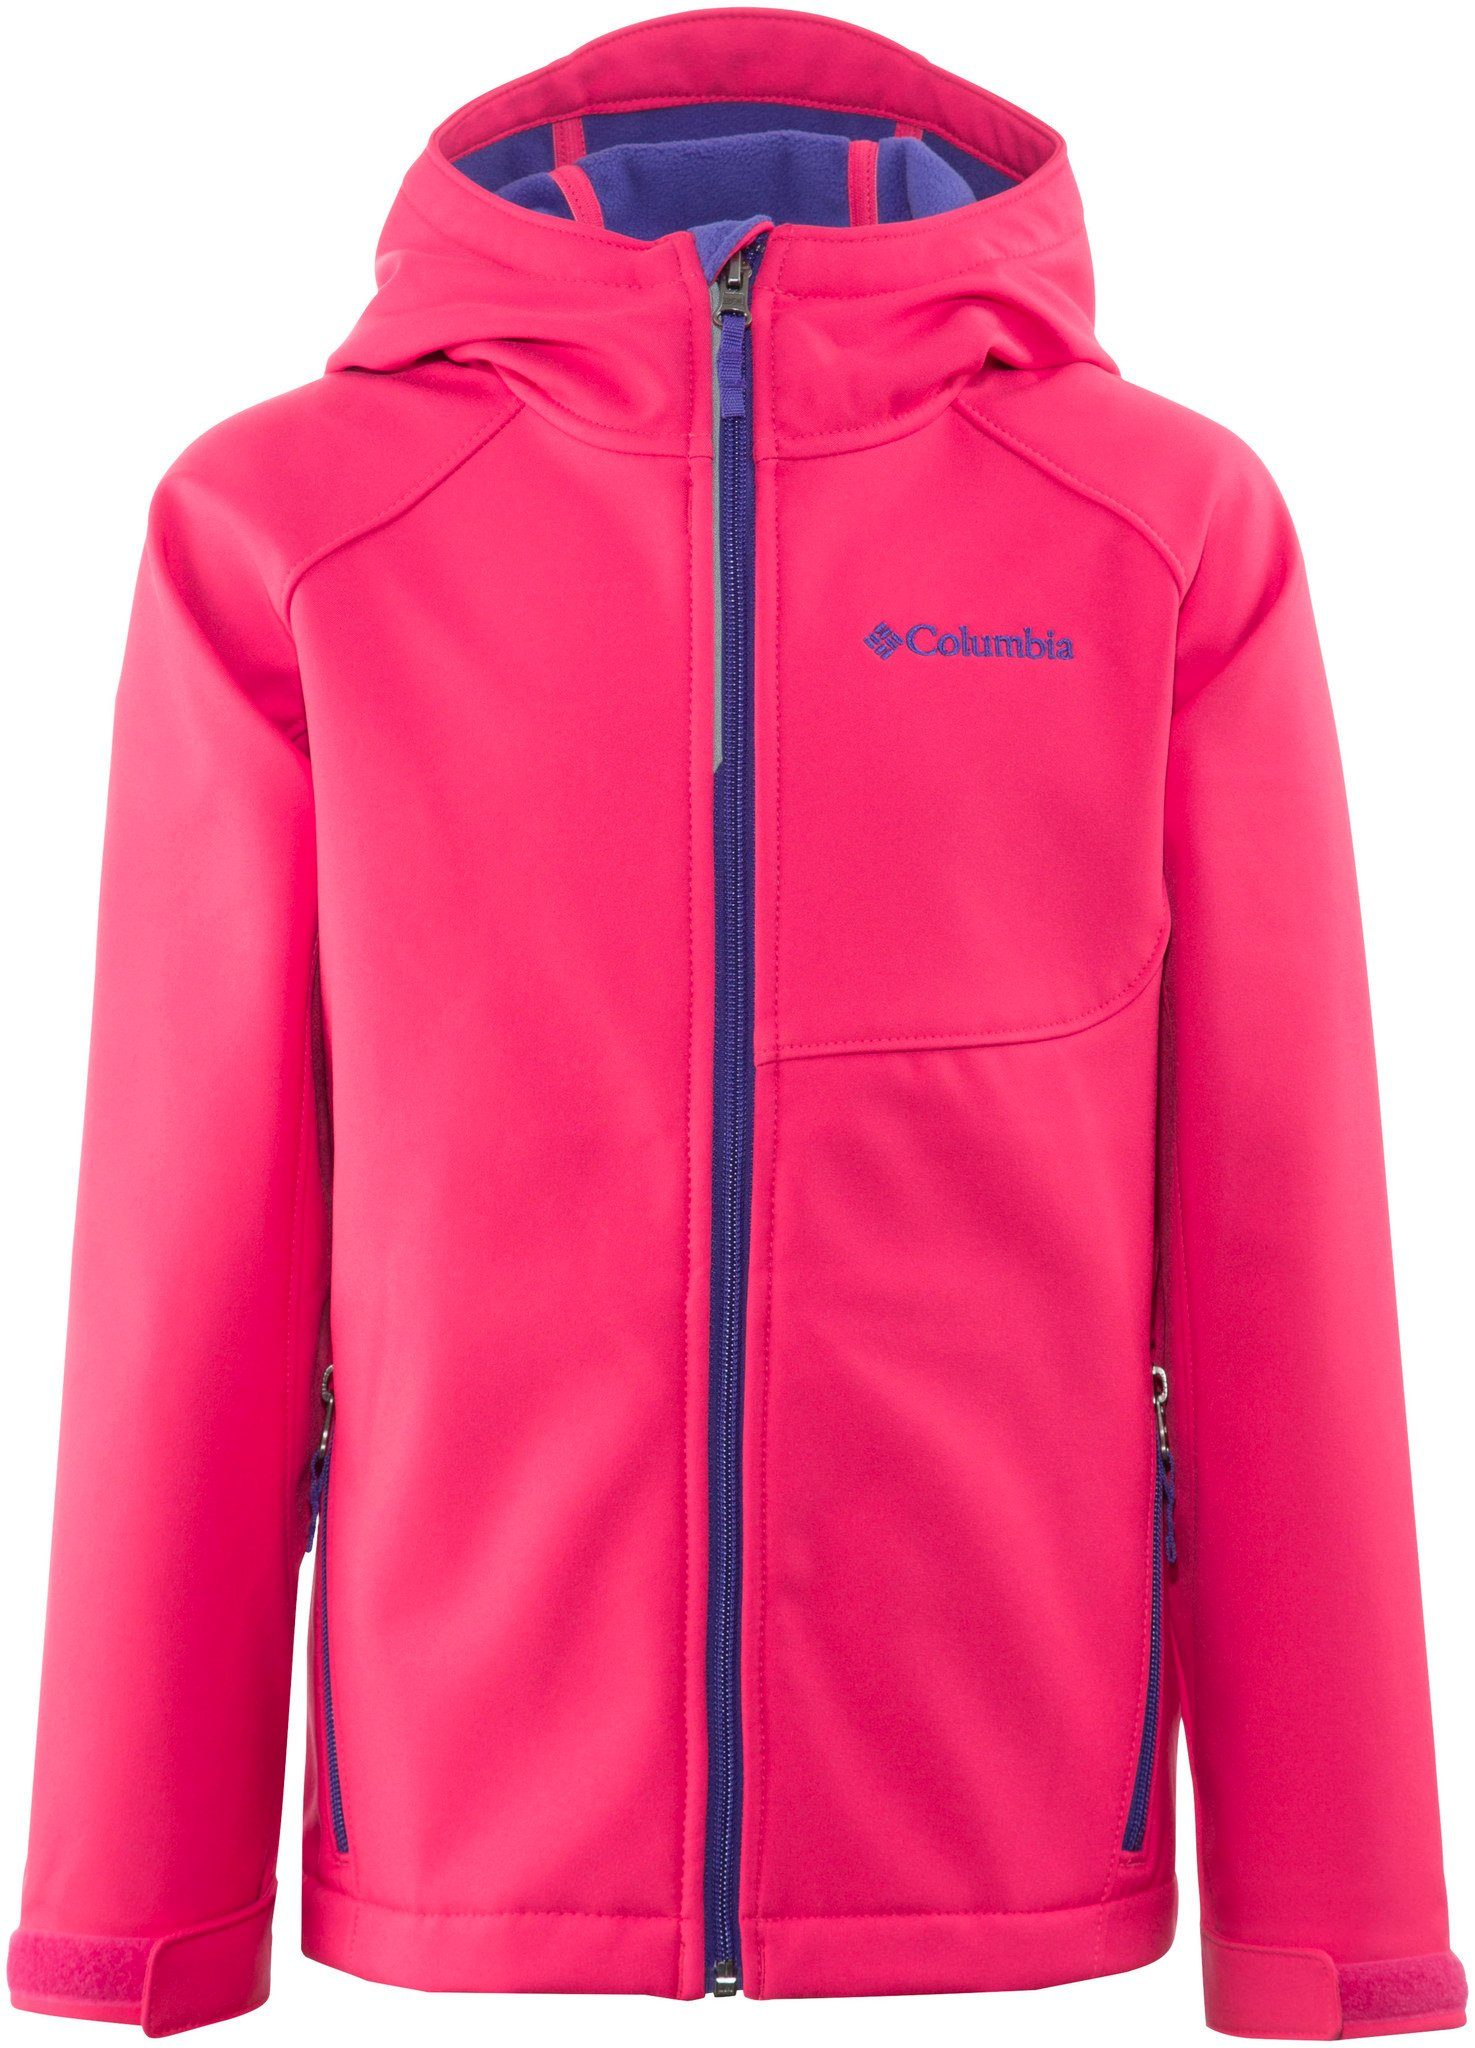 Columbia Outdoorjacke »Cascade Ridge Softshell Jacket Girls«